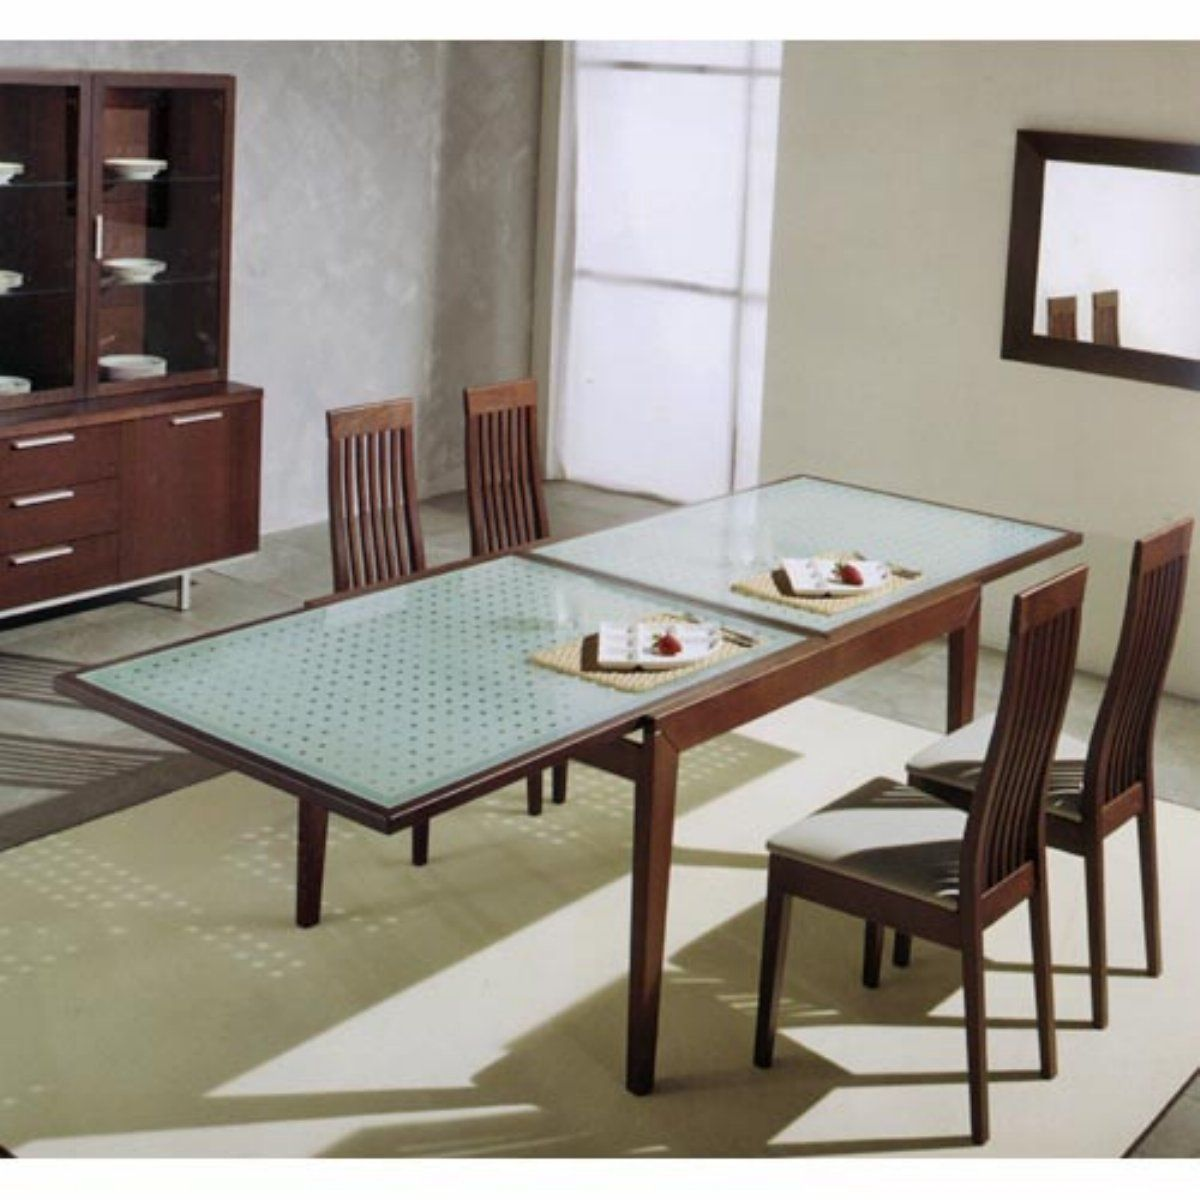 Glass Kitchen Tables Moen Single Handle Faucet Extendable Top Dining Table